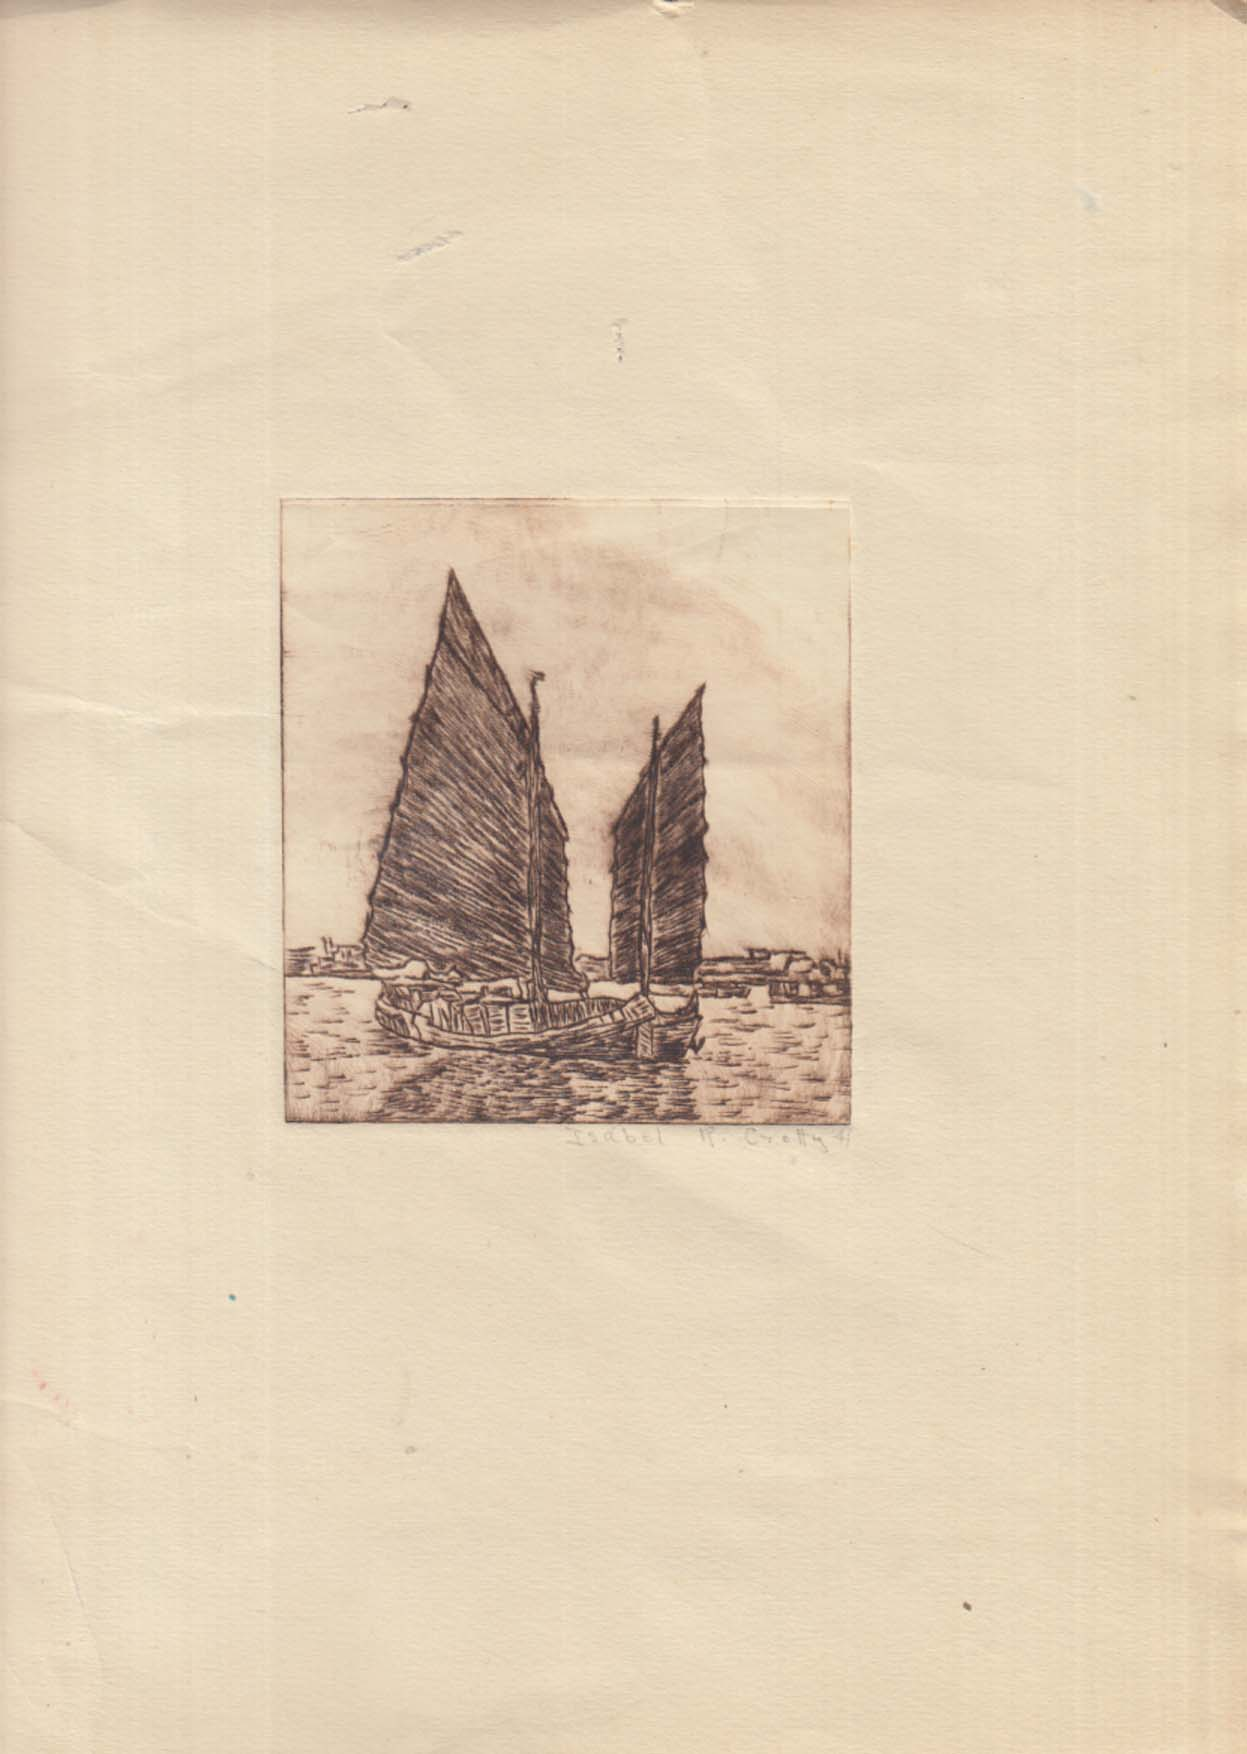 Chinese junk SIGNED engraving by Isabel R Crotty 1941